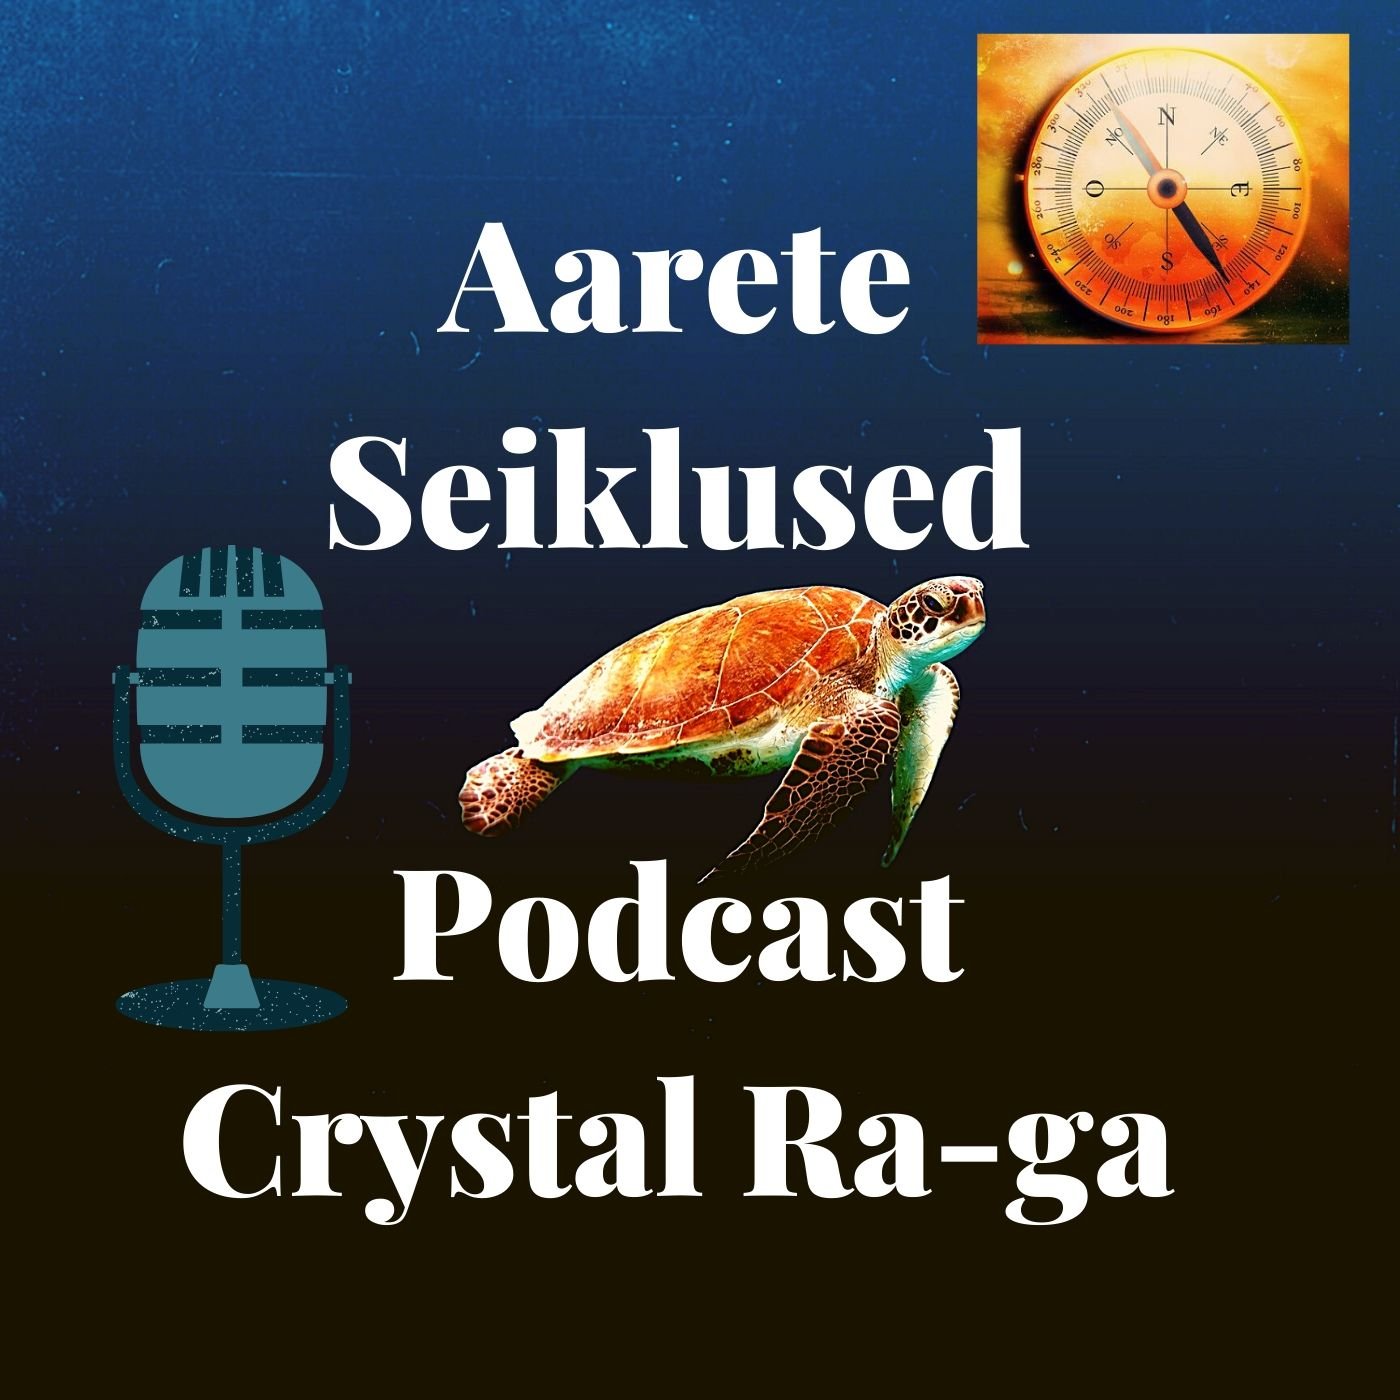 The aareteseiklused's Podcast